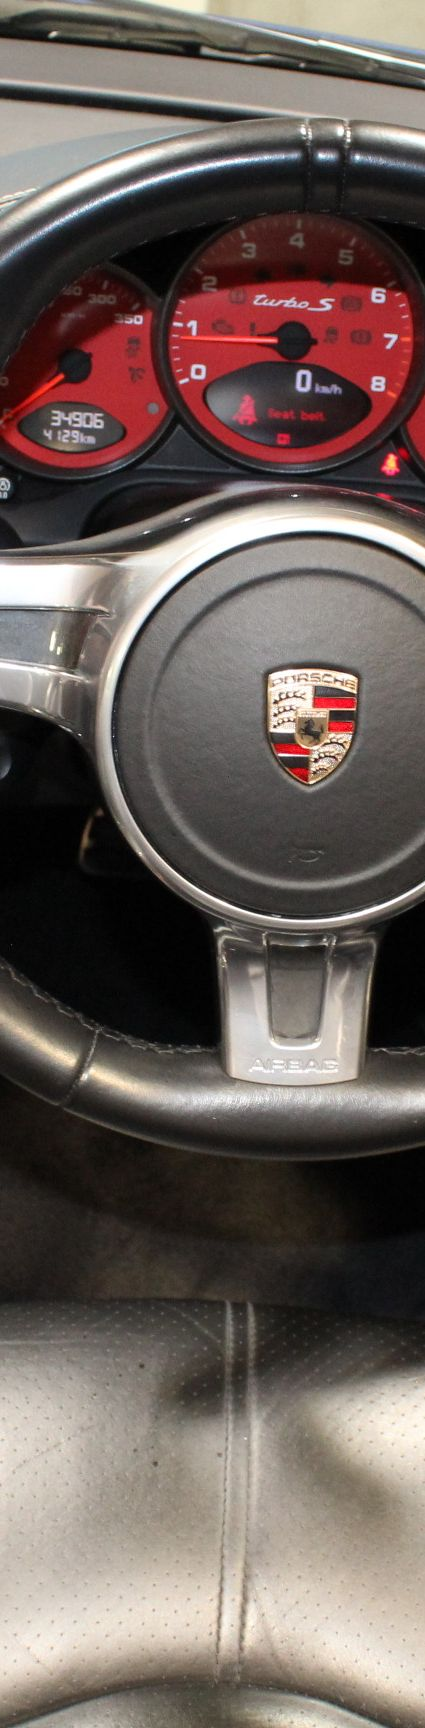 2011 Porsche 911 997 Series II Turbo S Convertible 2dr PDK 6sp AWD 3.8TT -  for sale in Australia